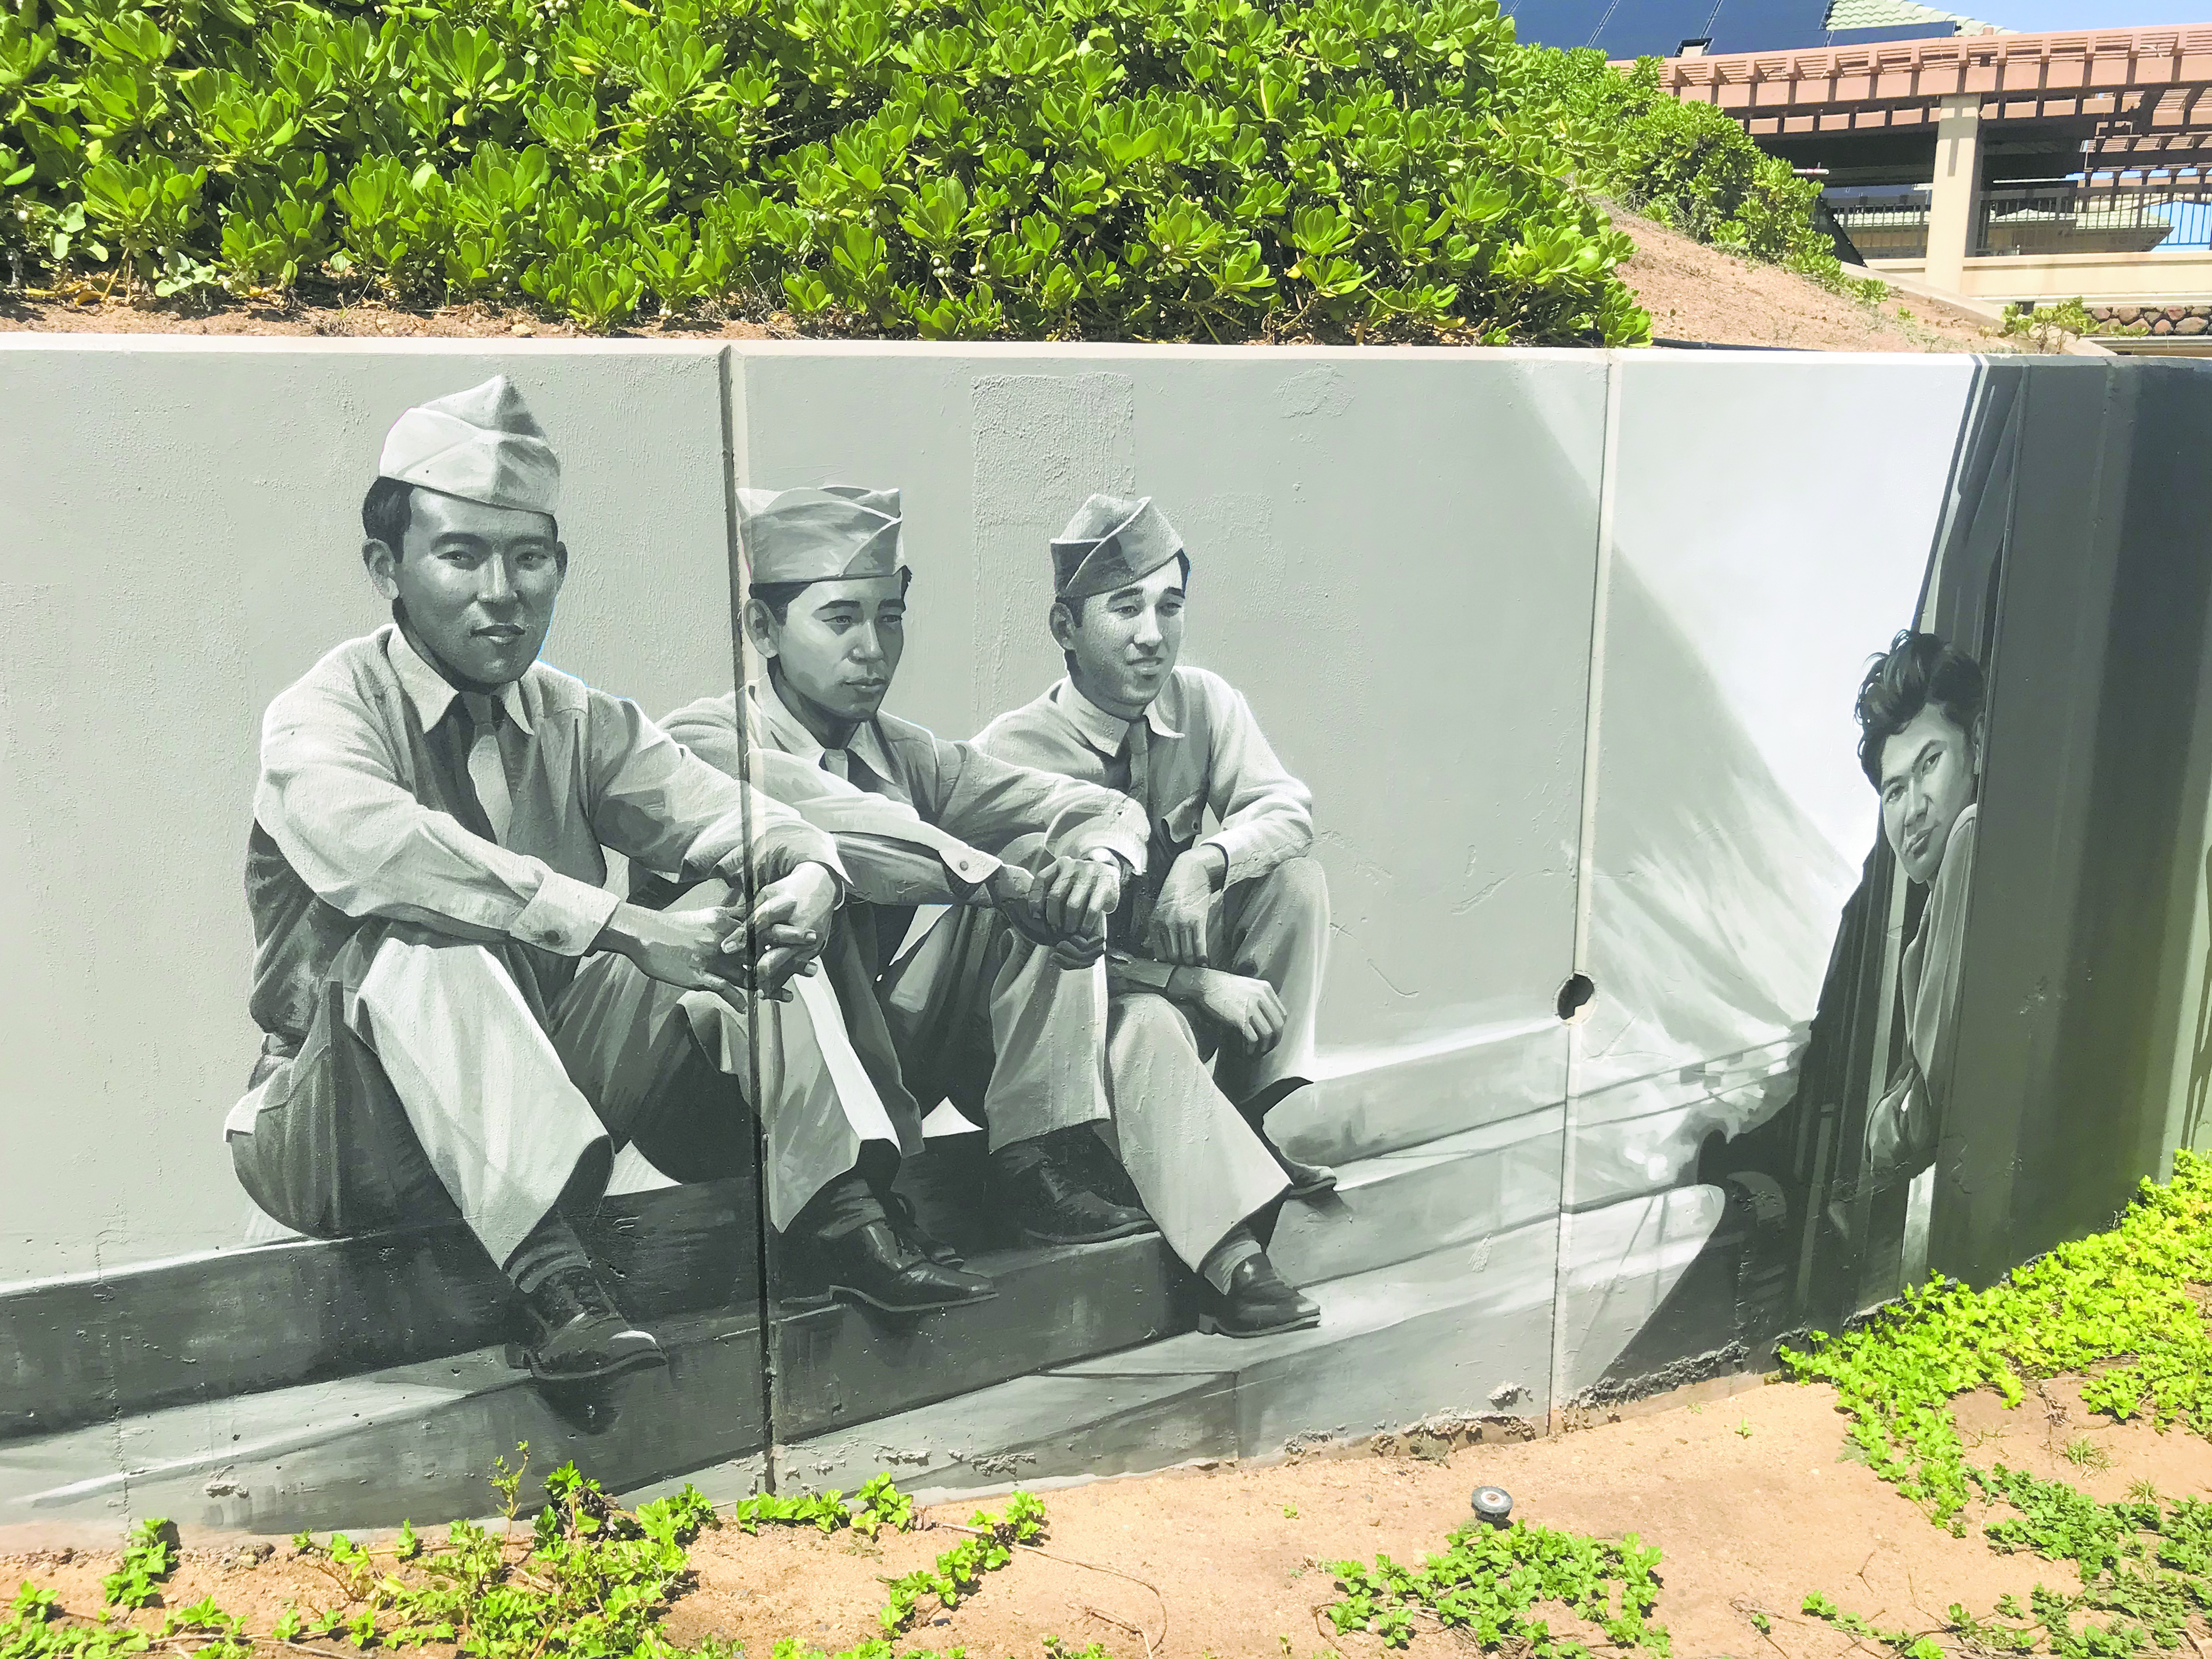 In some sections of the Nisei Veterans Memorial Center mural, the figures of the AJA soldiers stand 6 to 7 feet tall. (Photos by Melissa Tanji)